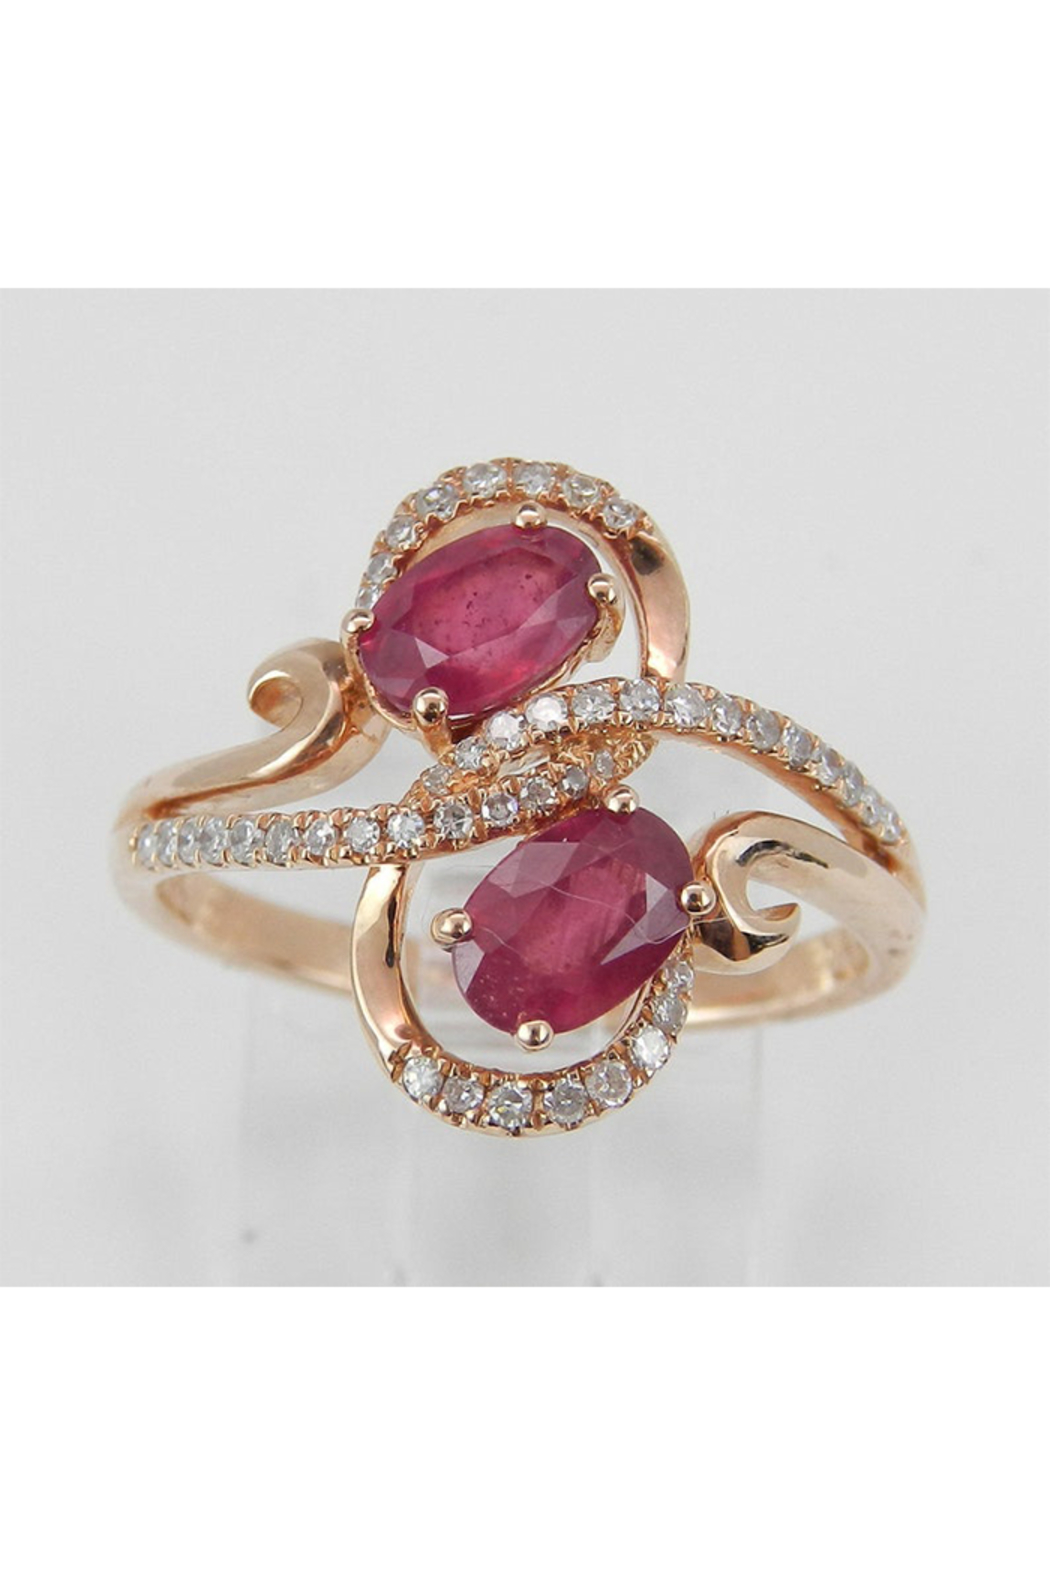 Margolin & Co 14K Rose Gold 1.40 ct Diamond and Ruby Cocktail Ring, Two Stone Right Hand Ring, Size 7, July Gemstone - Main Image